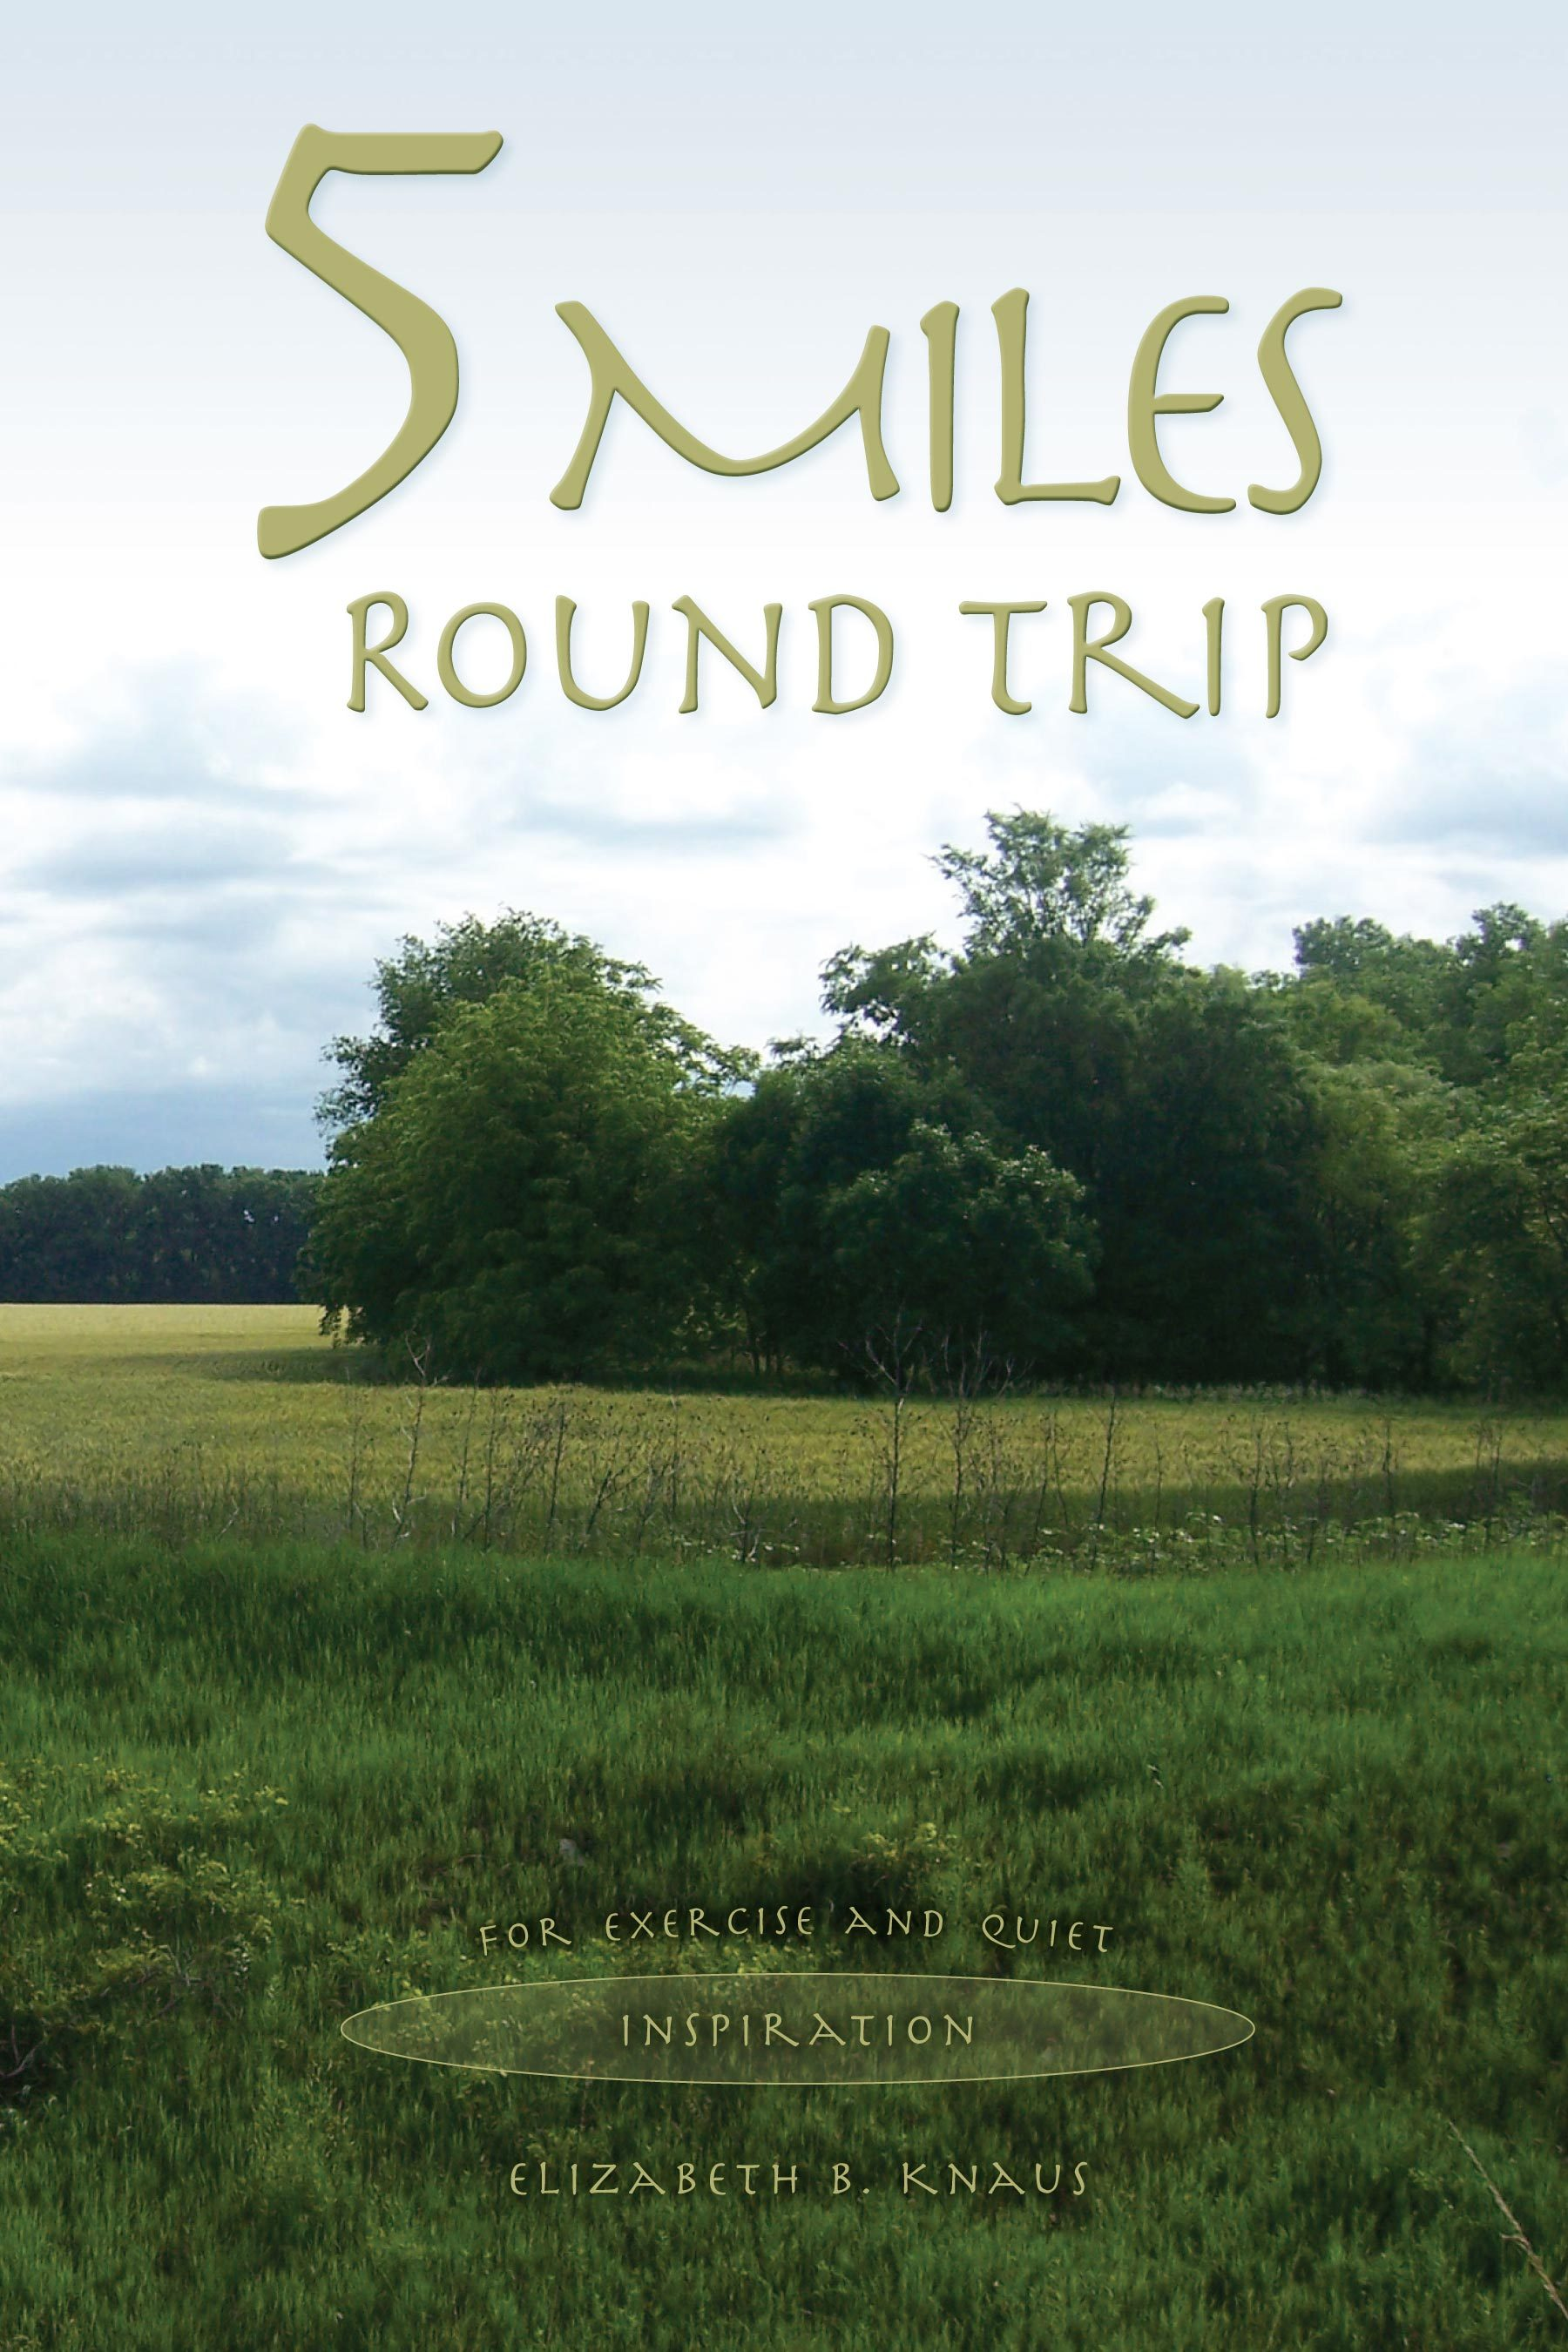 5 Miles Round Trip: For Exercise and Quiet Inspiration  by  Elizabeth B. Knaus